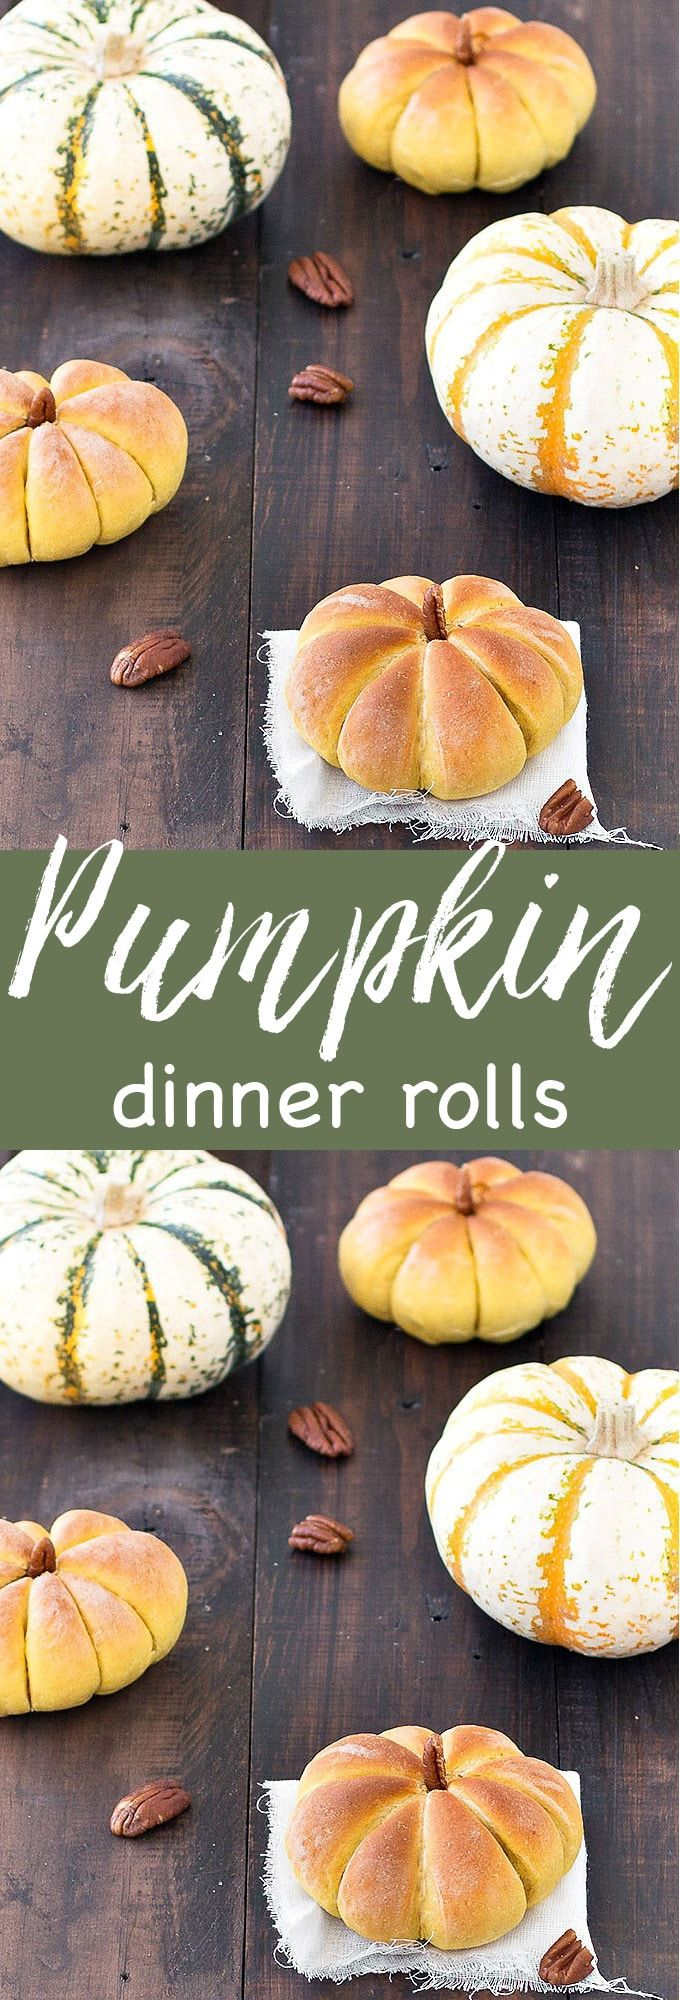 268 best thanksgiving things images on pinterest crafts for Best things to have for thanksgiving dinner